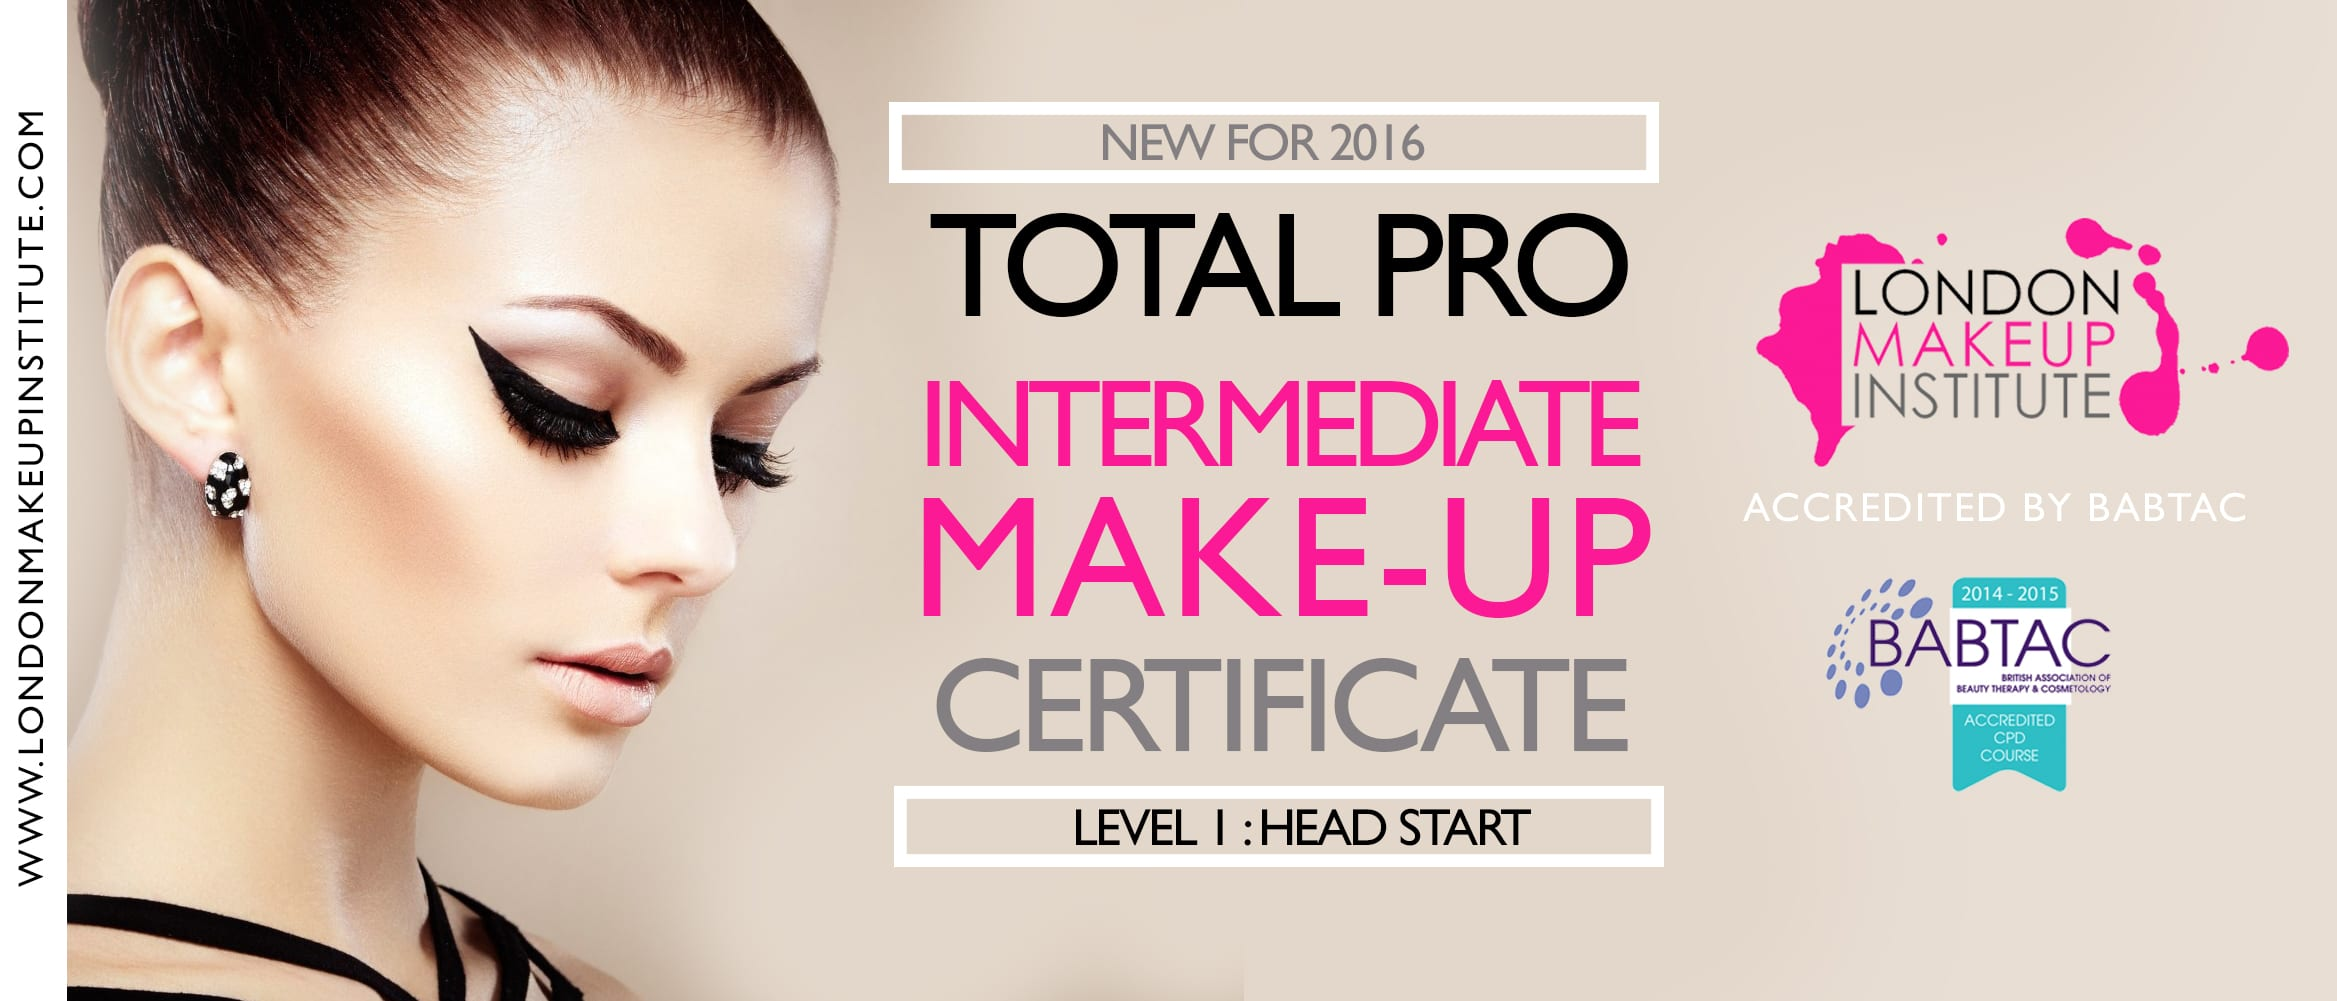 Artist Makeup Courses In London